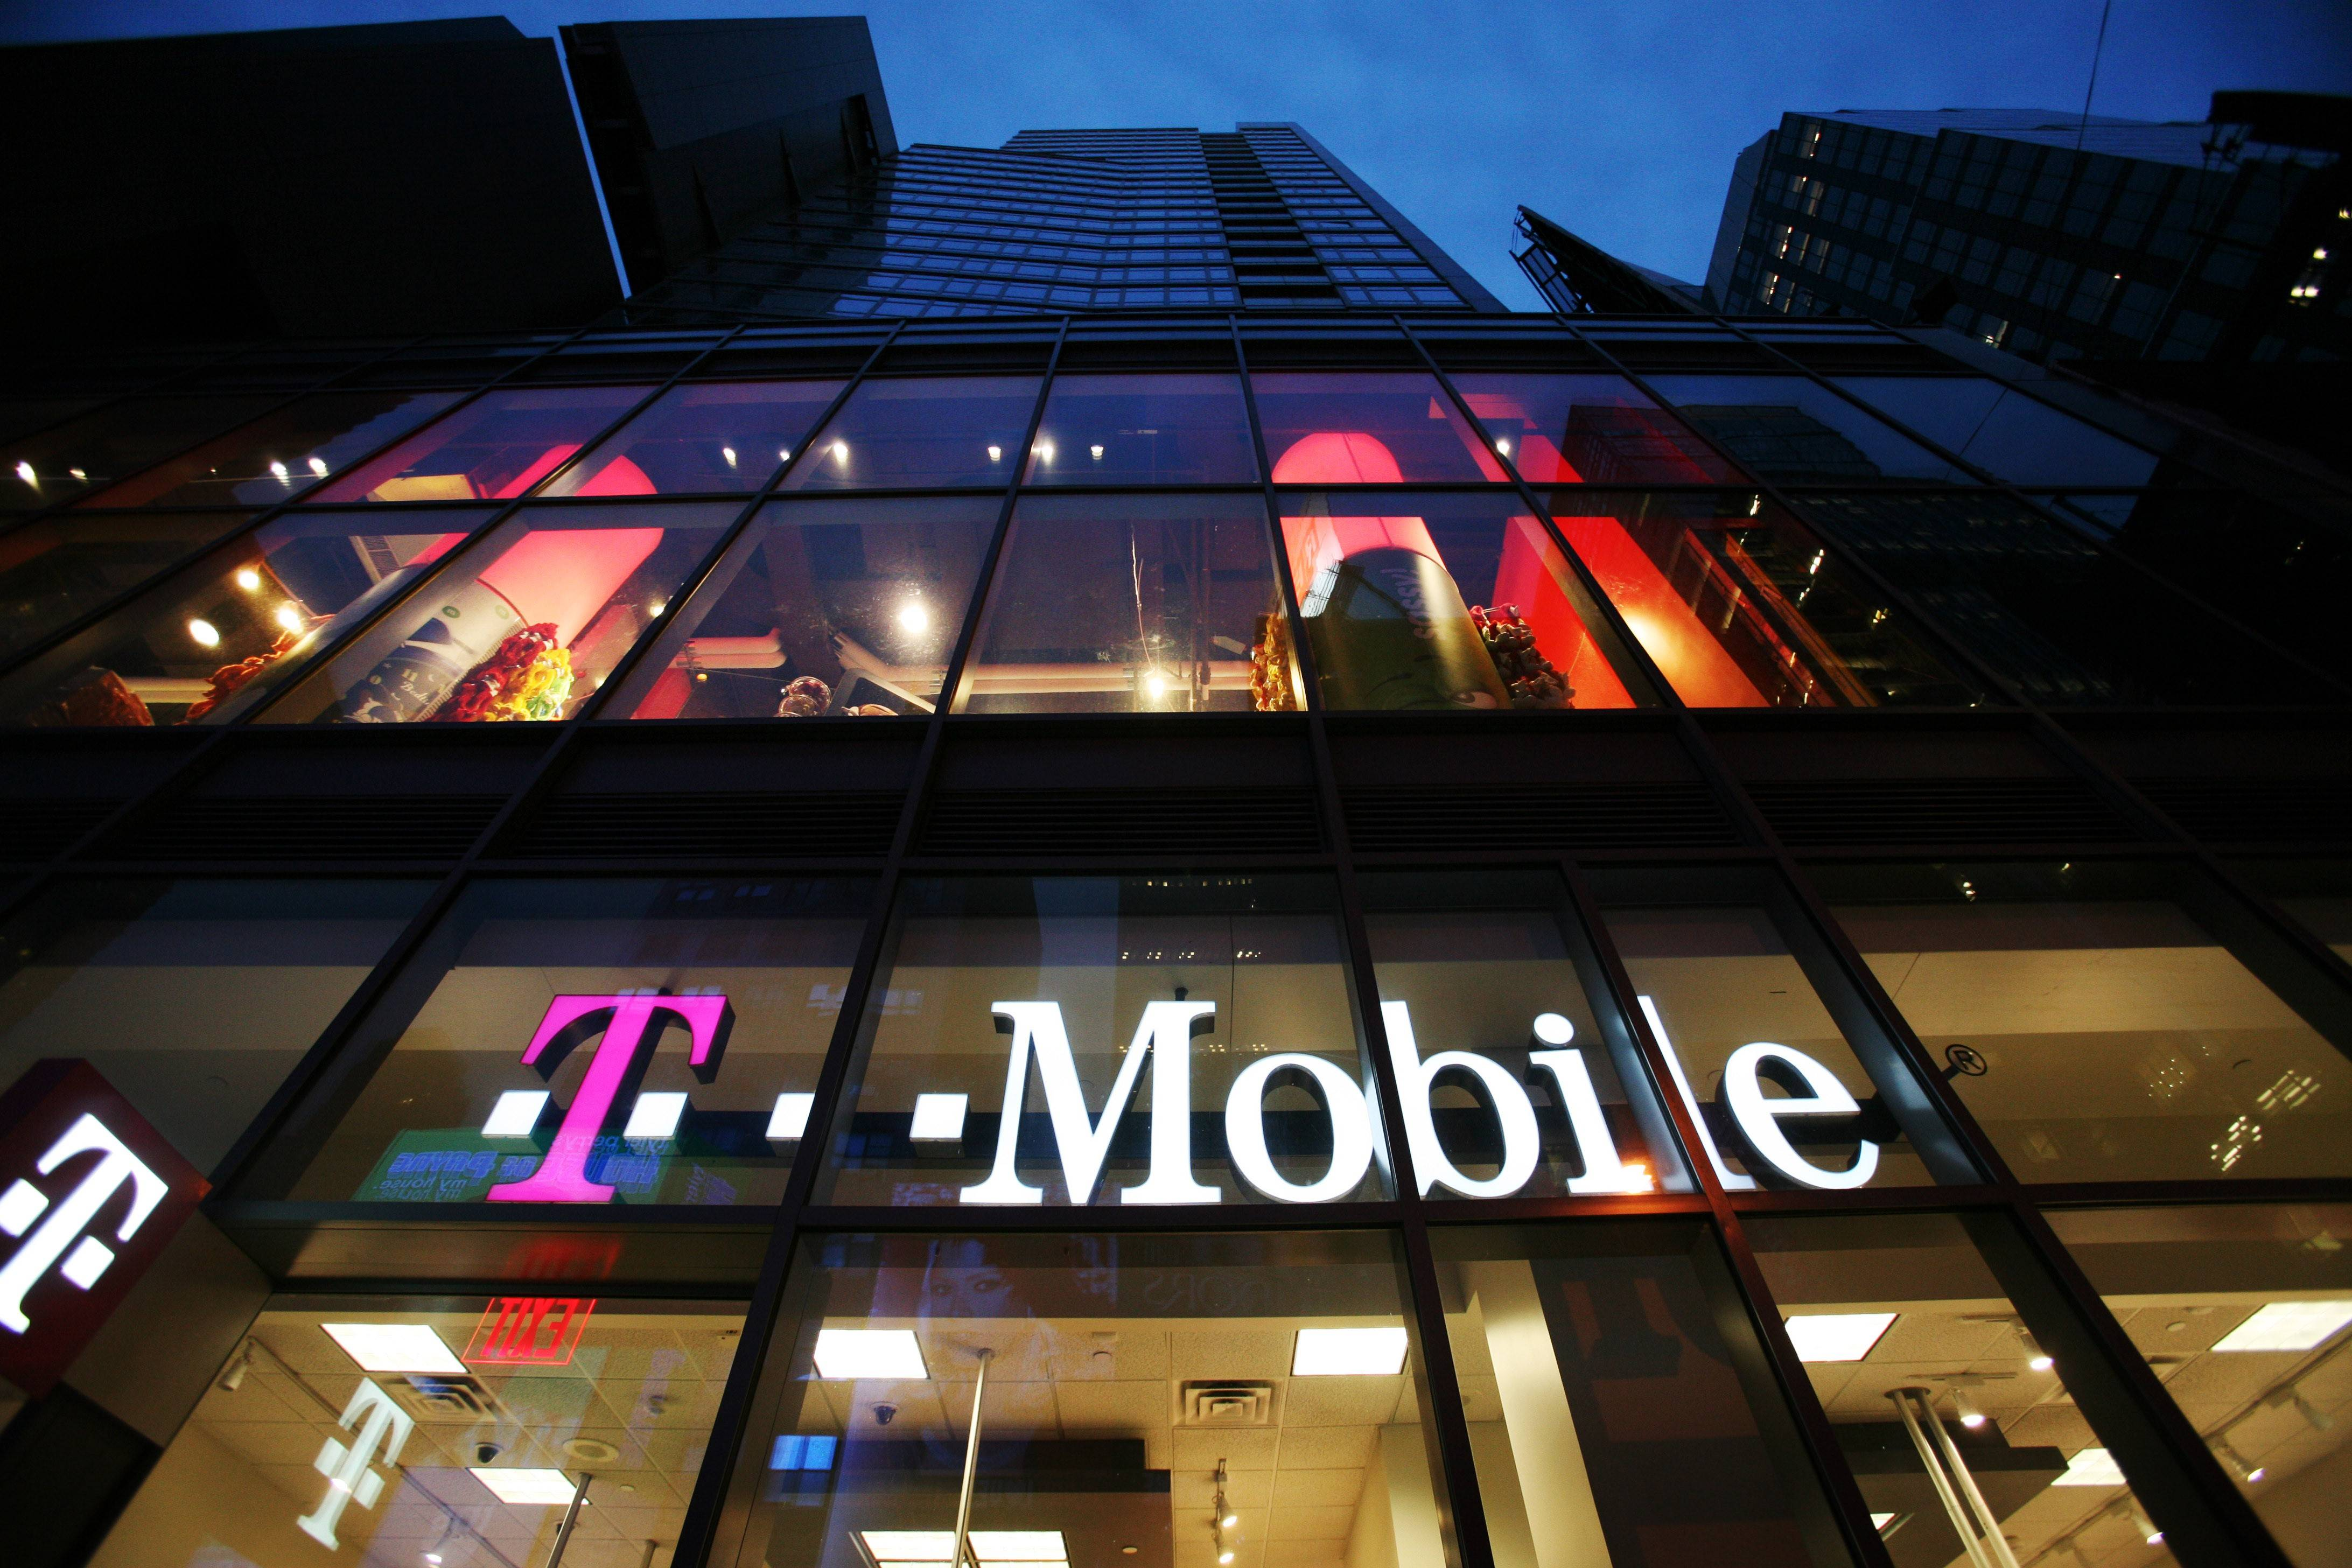 Dish Network Corp.'s $26 billion worth of airwaves and national pay-TV service, if combined with T-Mobile US Inc., would create a formidable fourth player in the U.S. wireless market, said analysts at Moody's Investors Service and Macquarie Group Ltd.